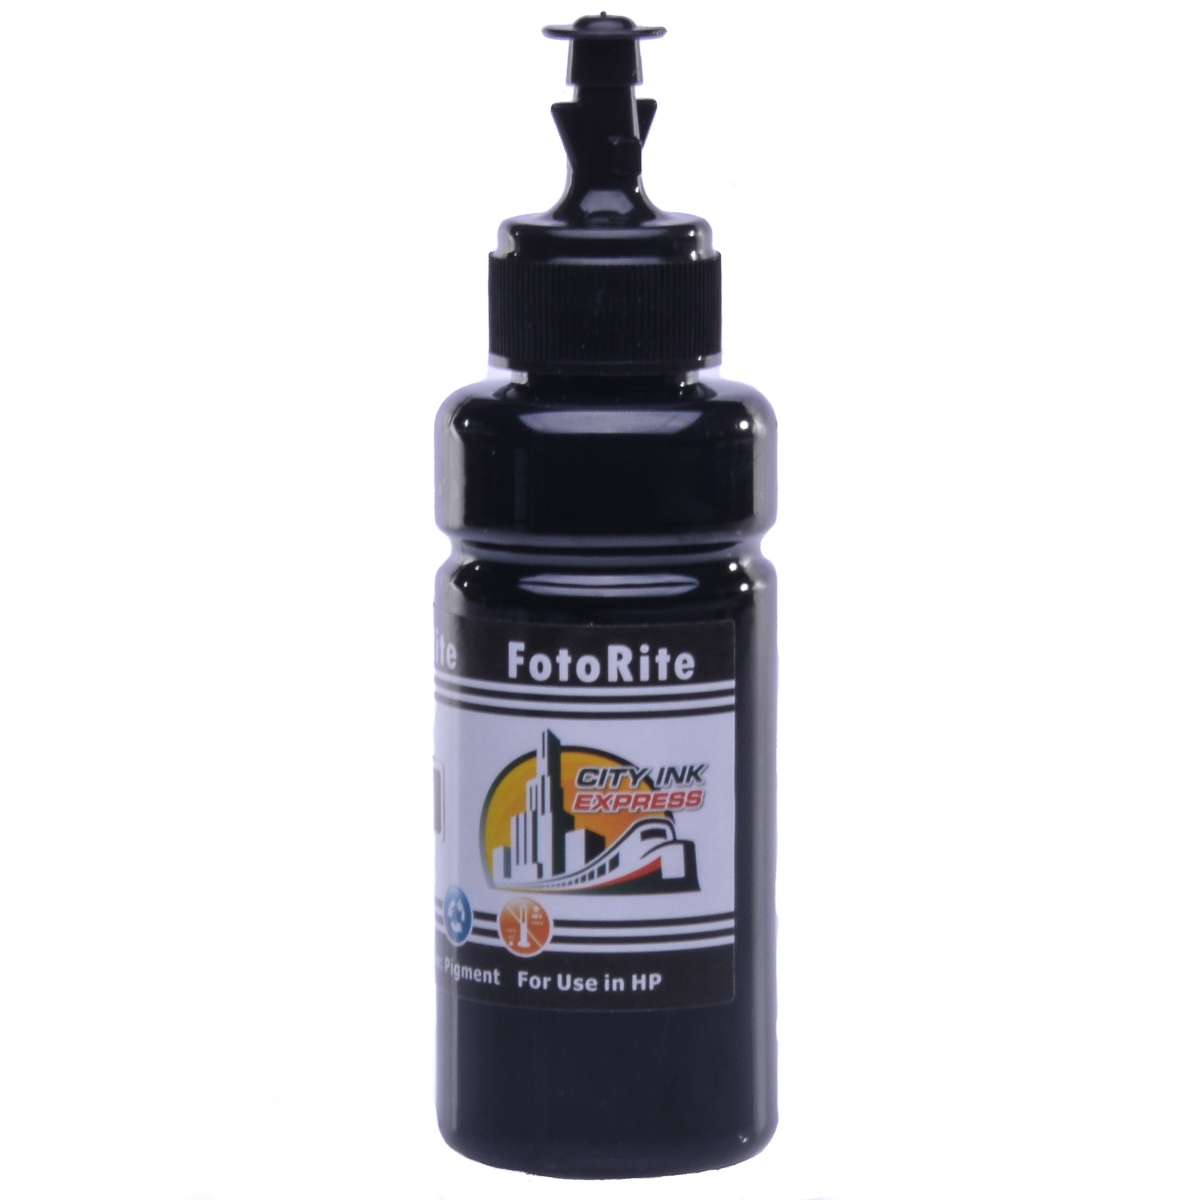 Cheap Black pigment ink refill replaces HP Officejet Pro Officejet Pro A909g - HP 940 - HP 940XL